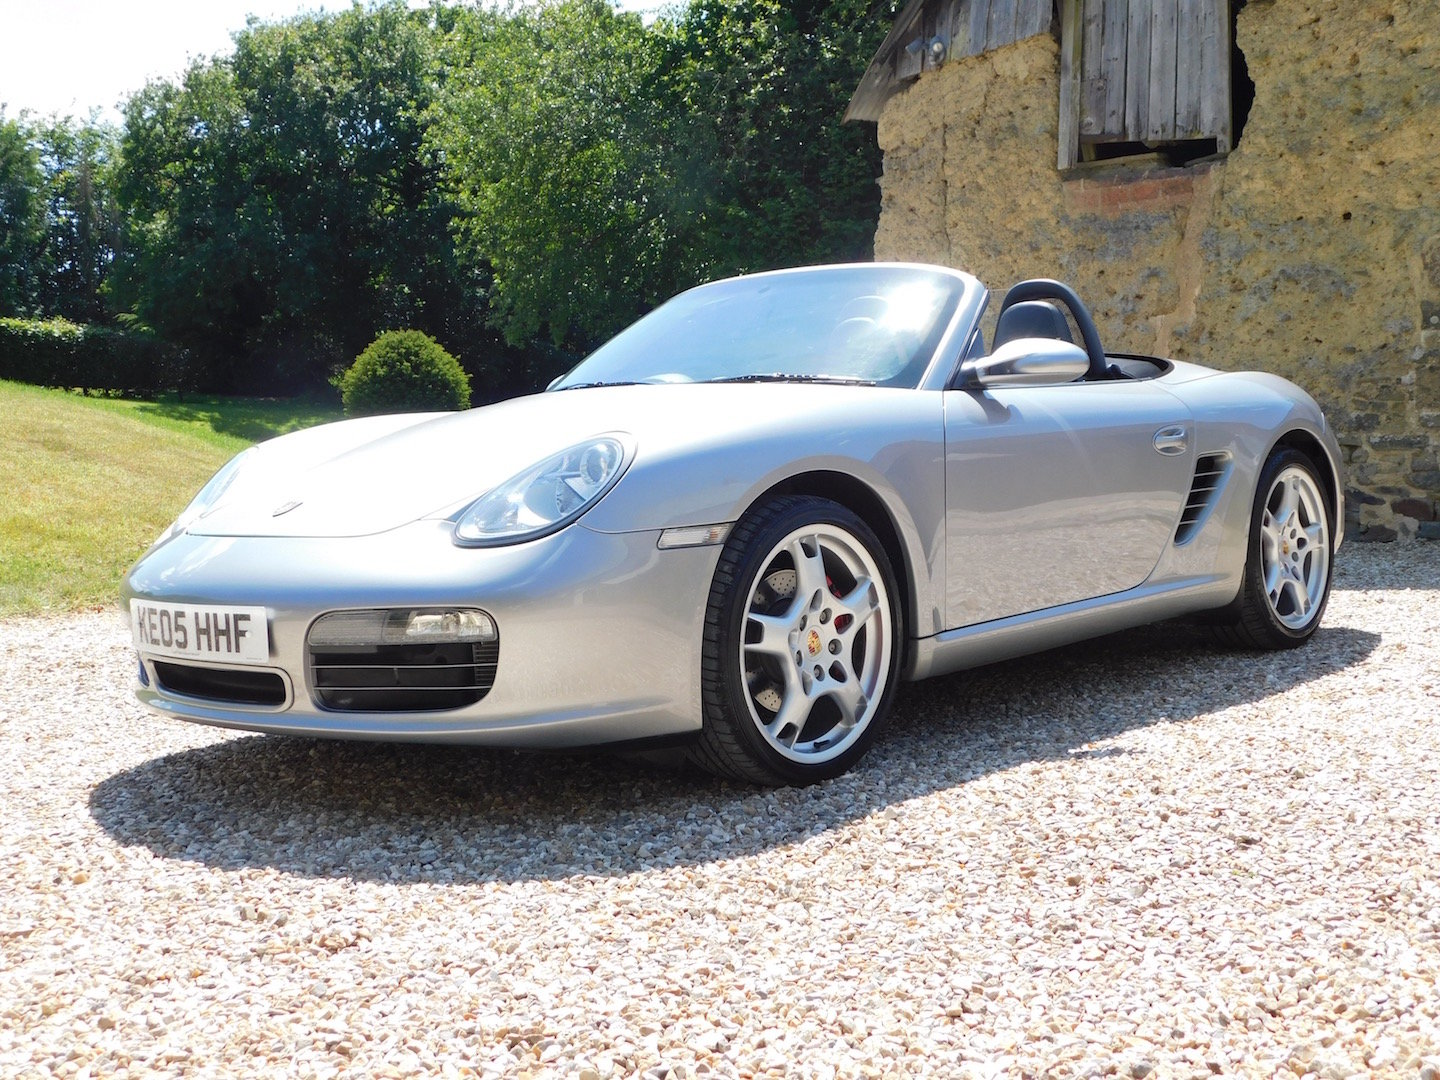 2005 Porsche 987 Boxster 3.2 S - superb order, FSH, high spec For Sale (picture 4 of 6)